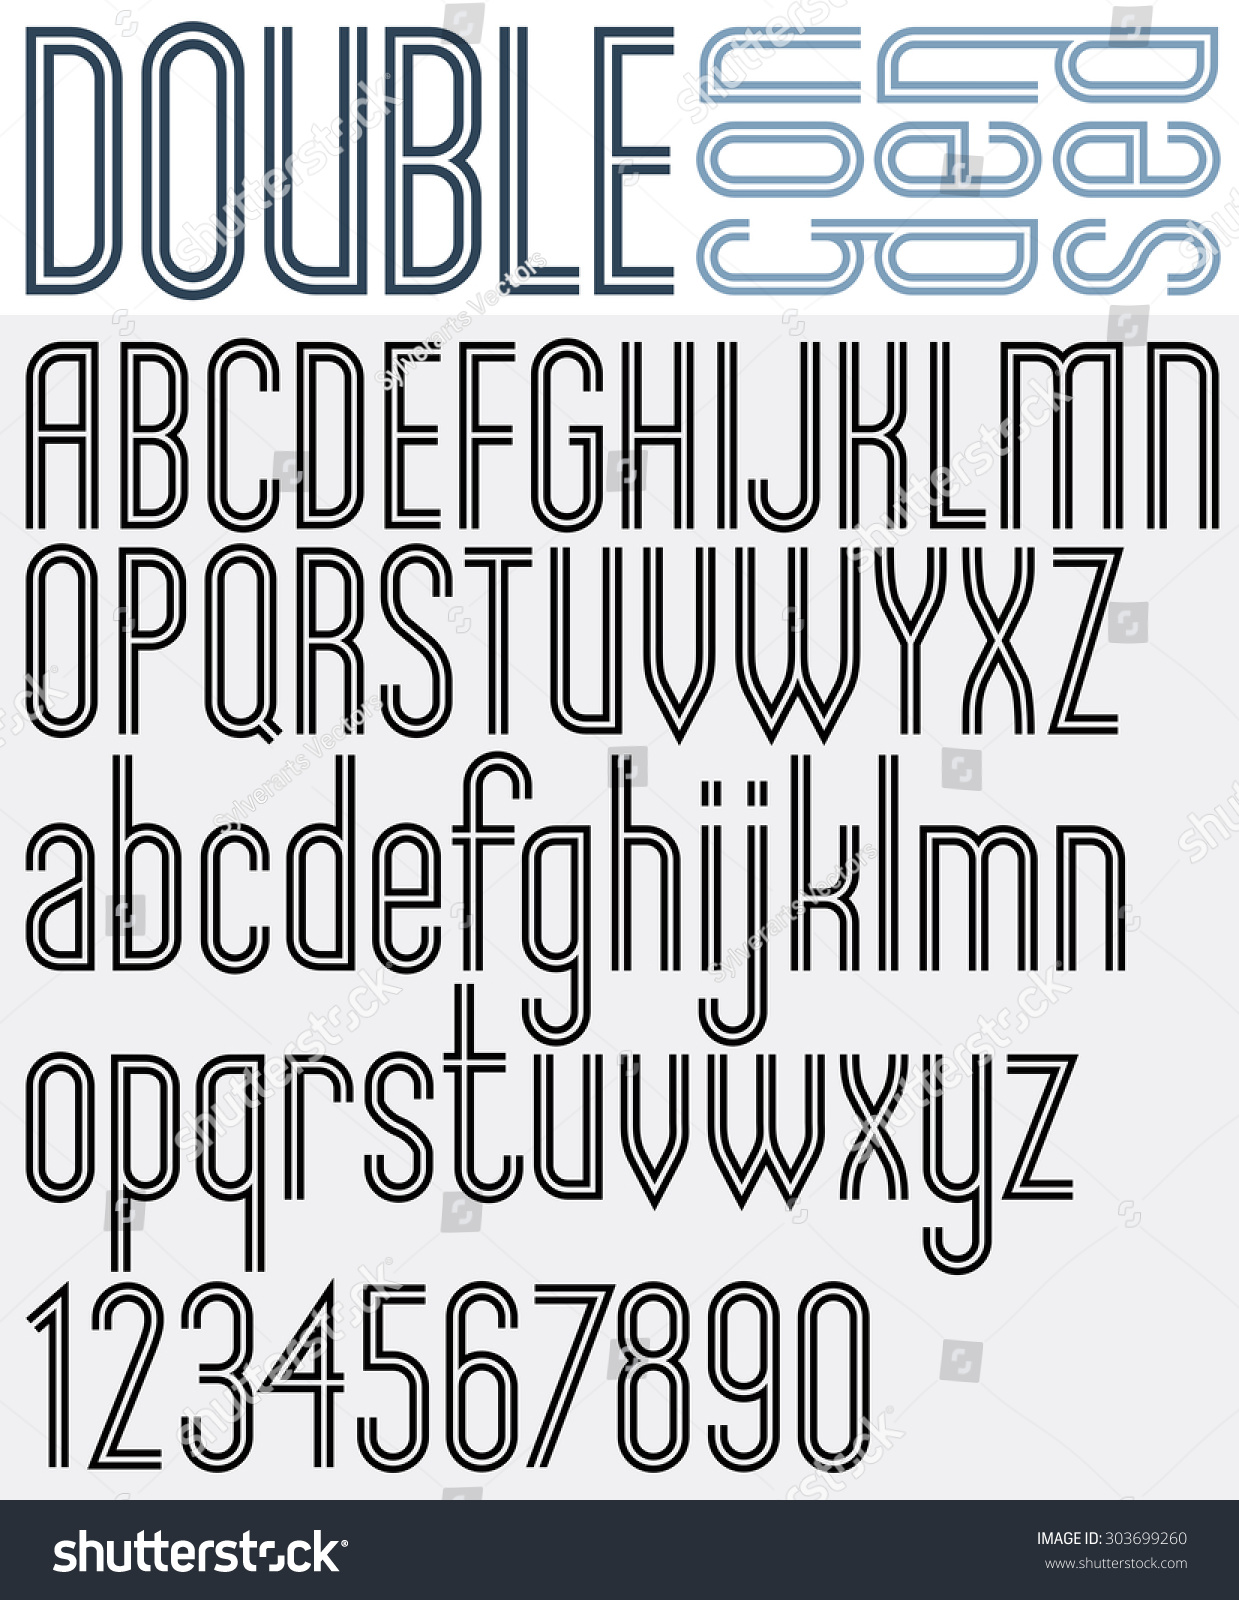 Double Line Retro Style Geometric Font Light Condensed Version Trendy And Stylish Letters Alphabet